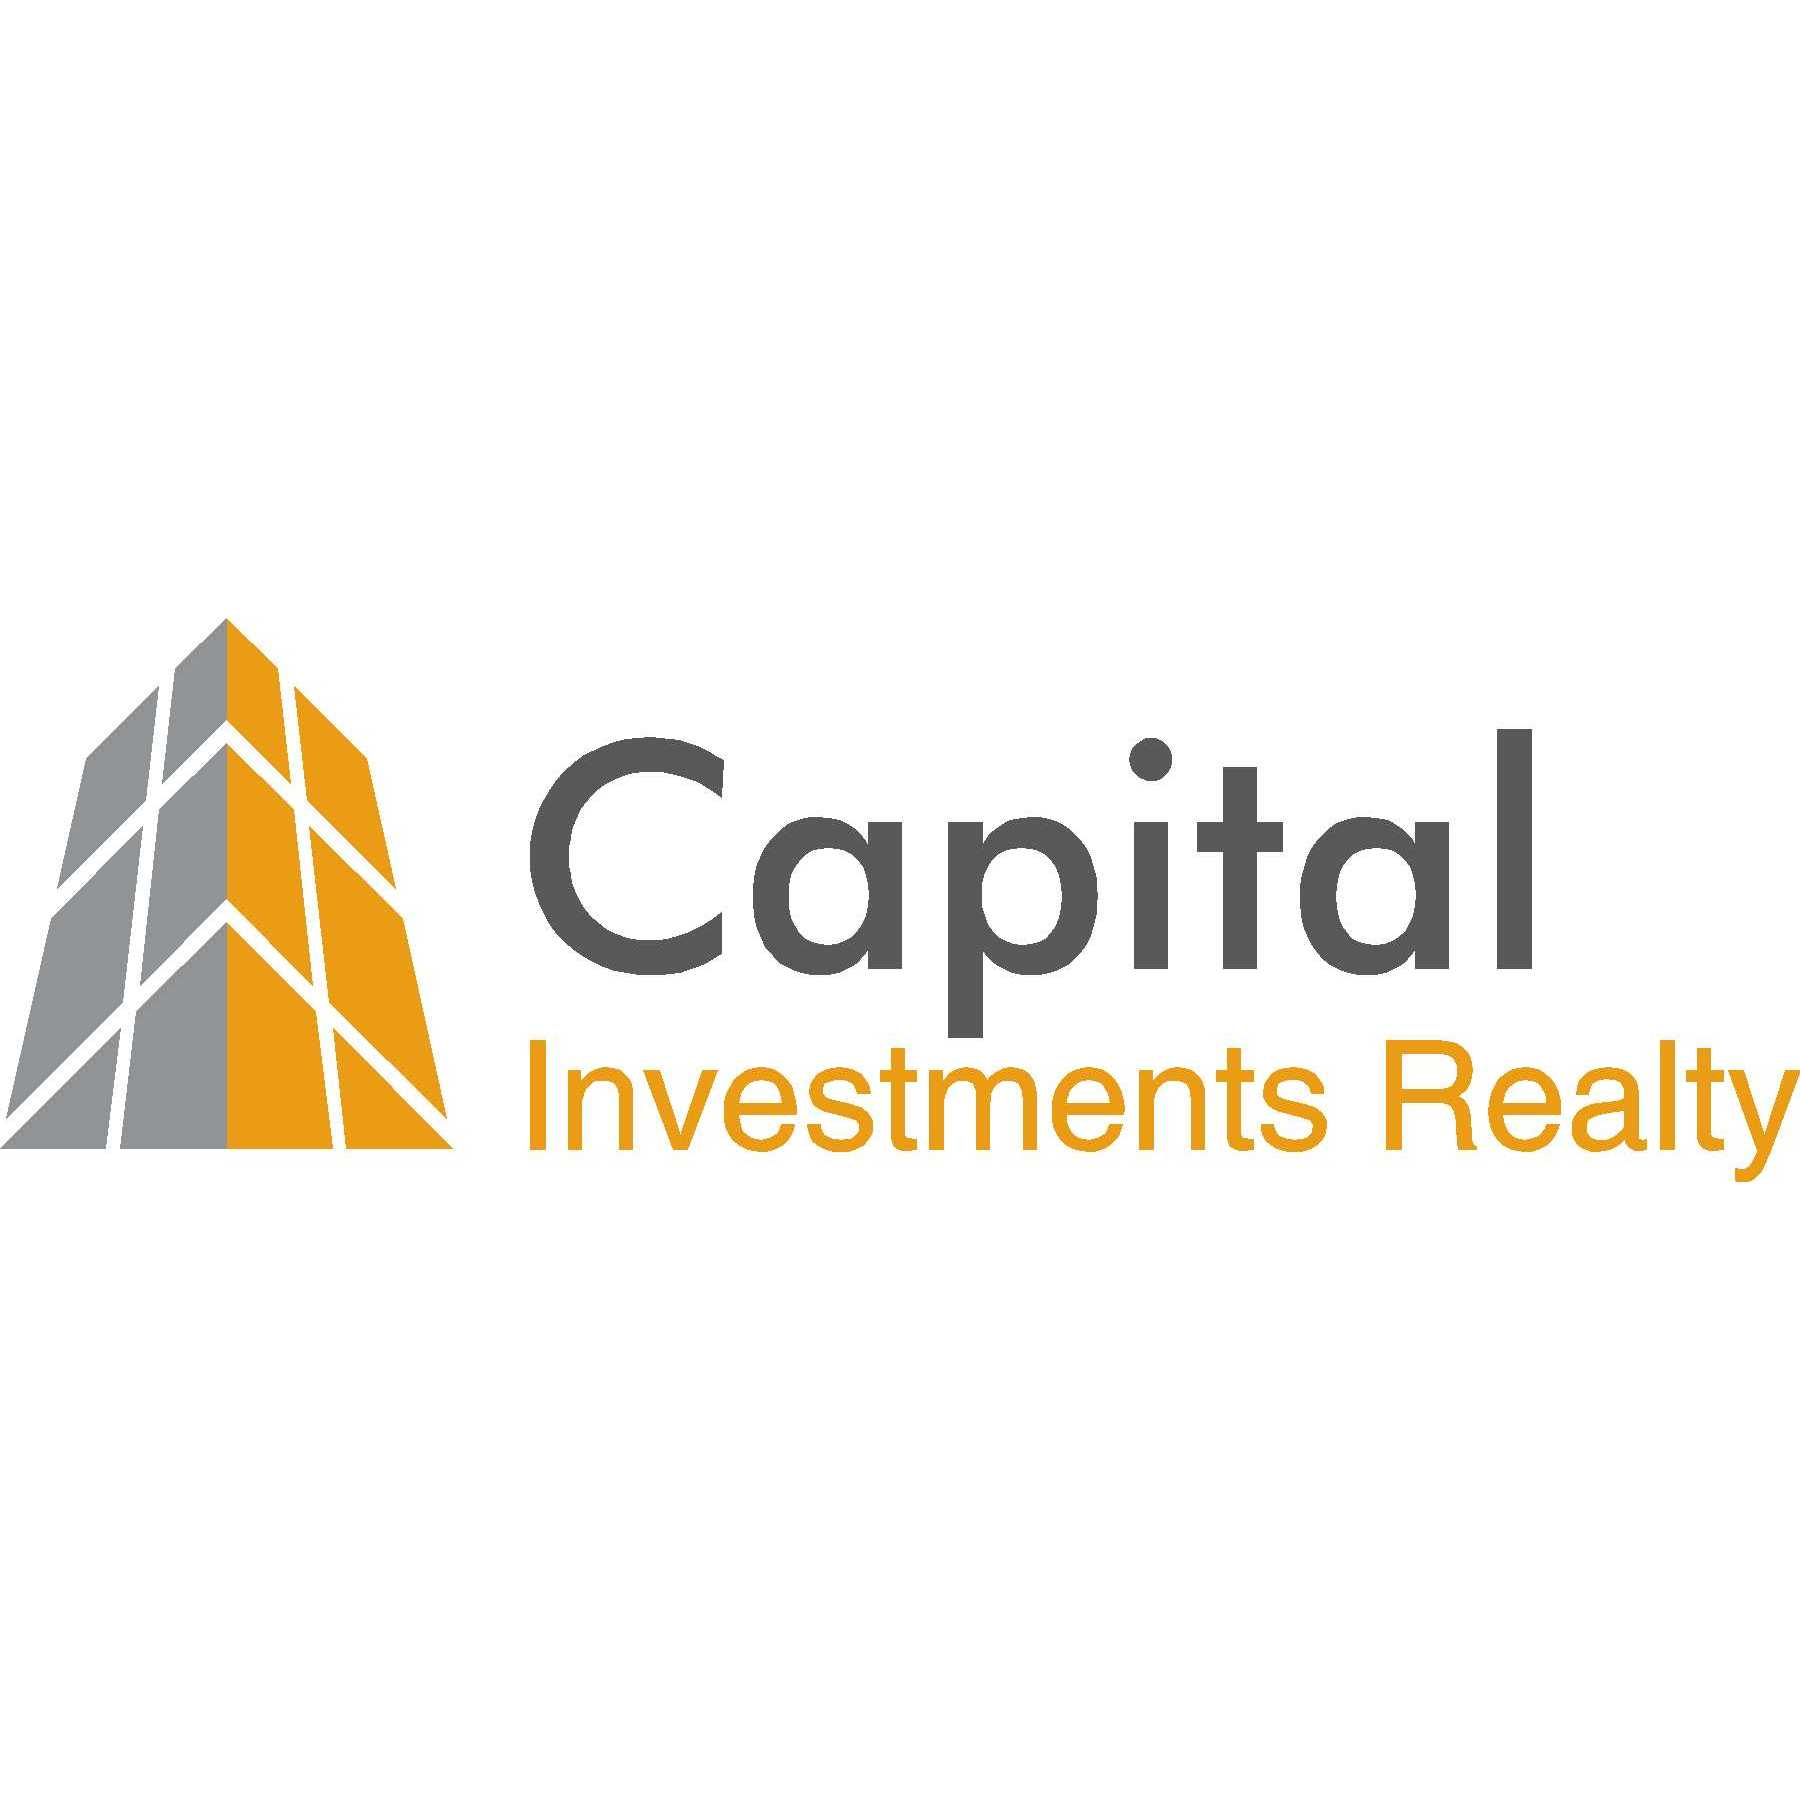 Capital Investments Realty